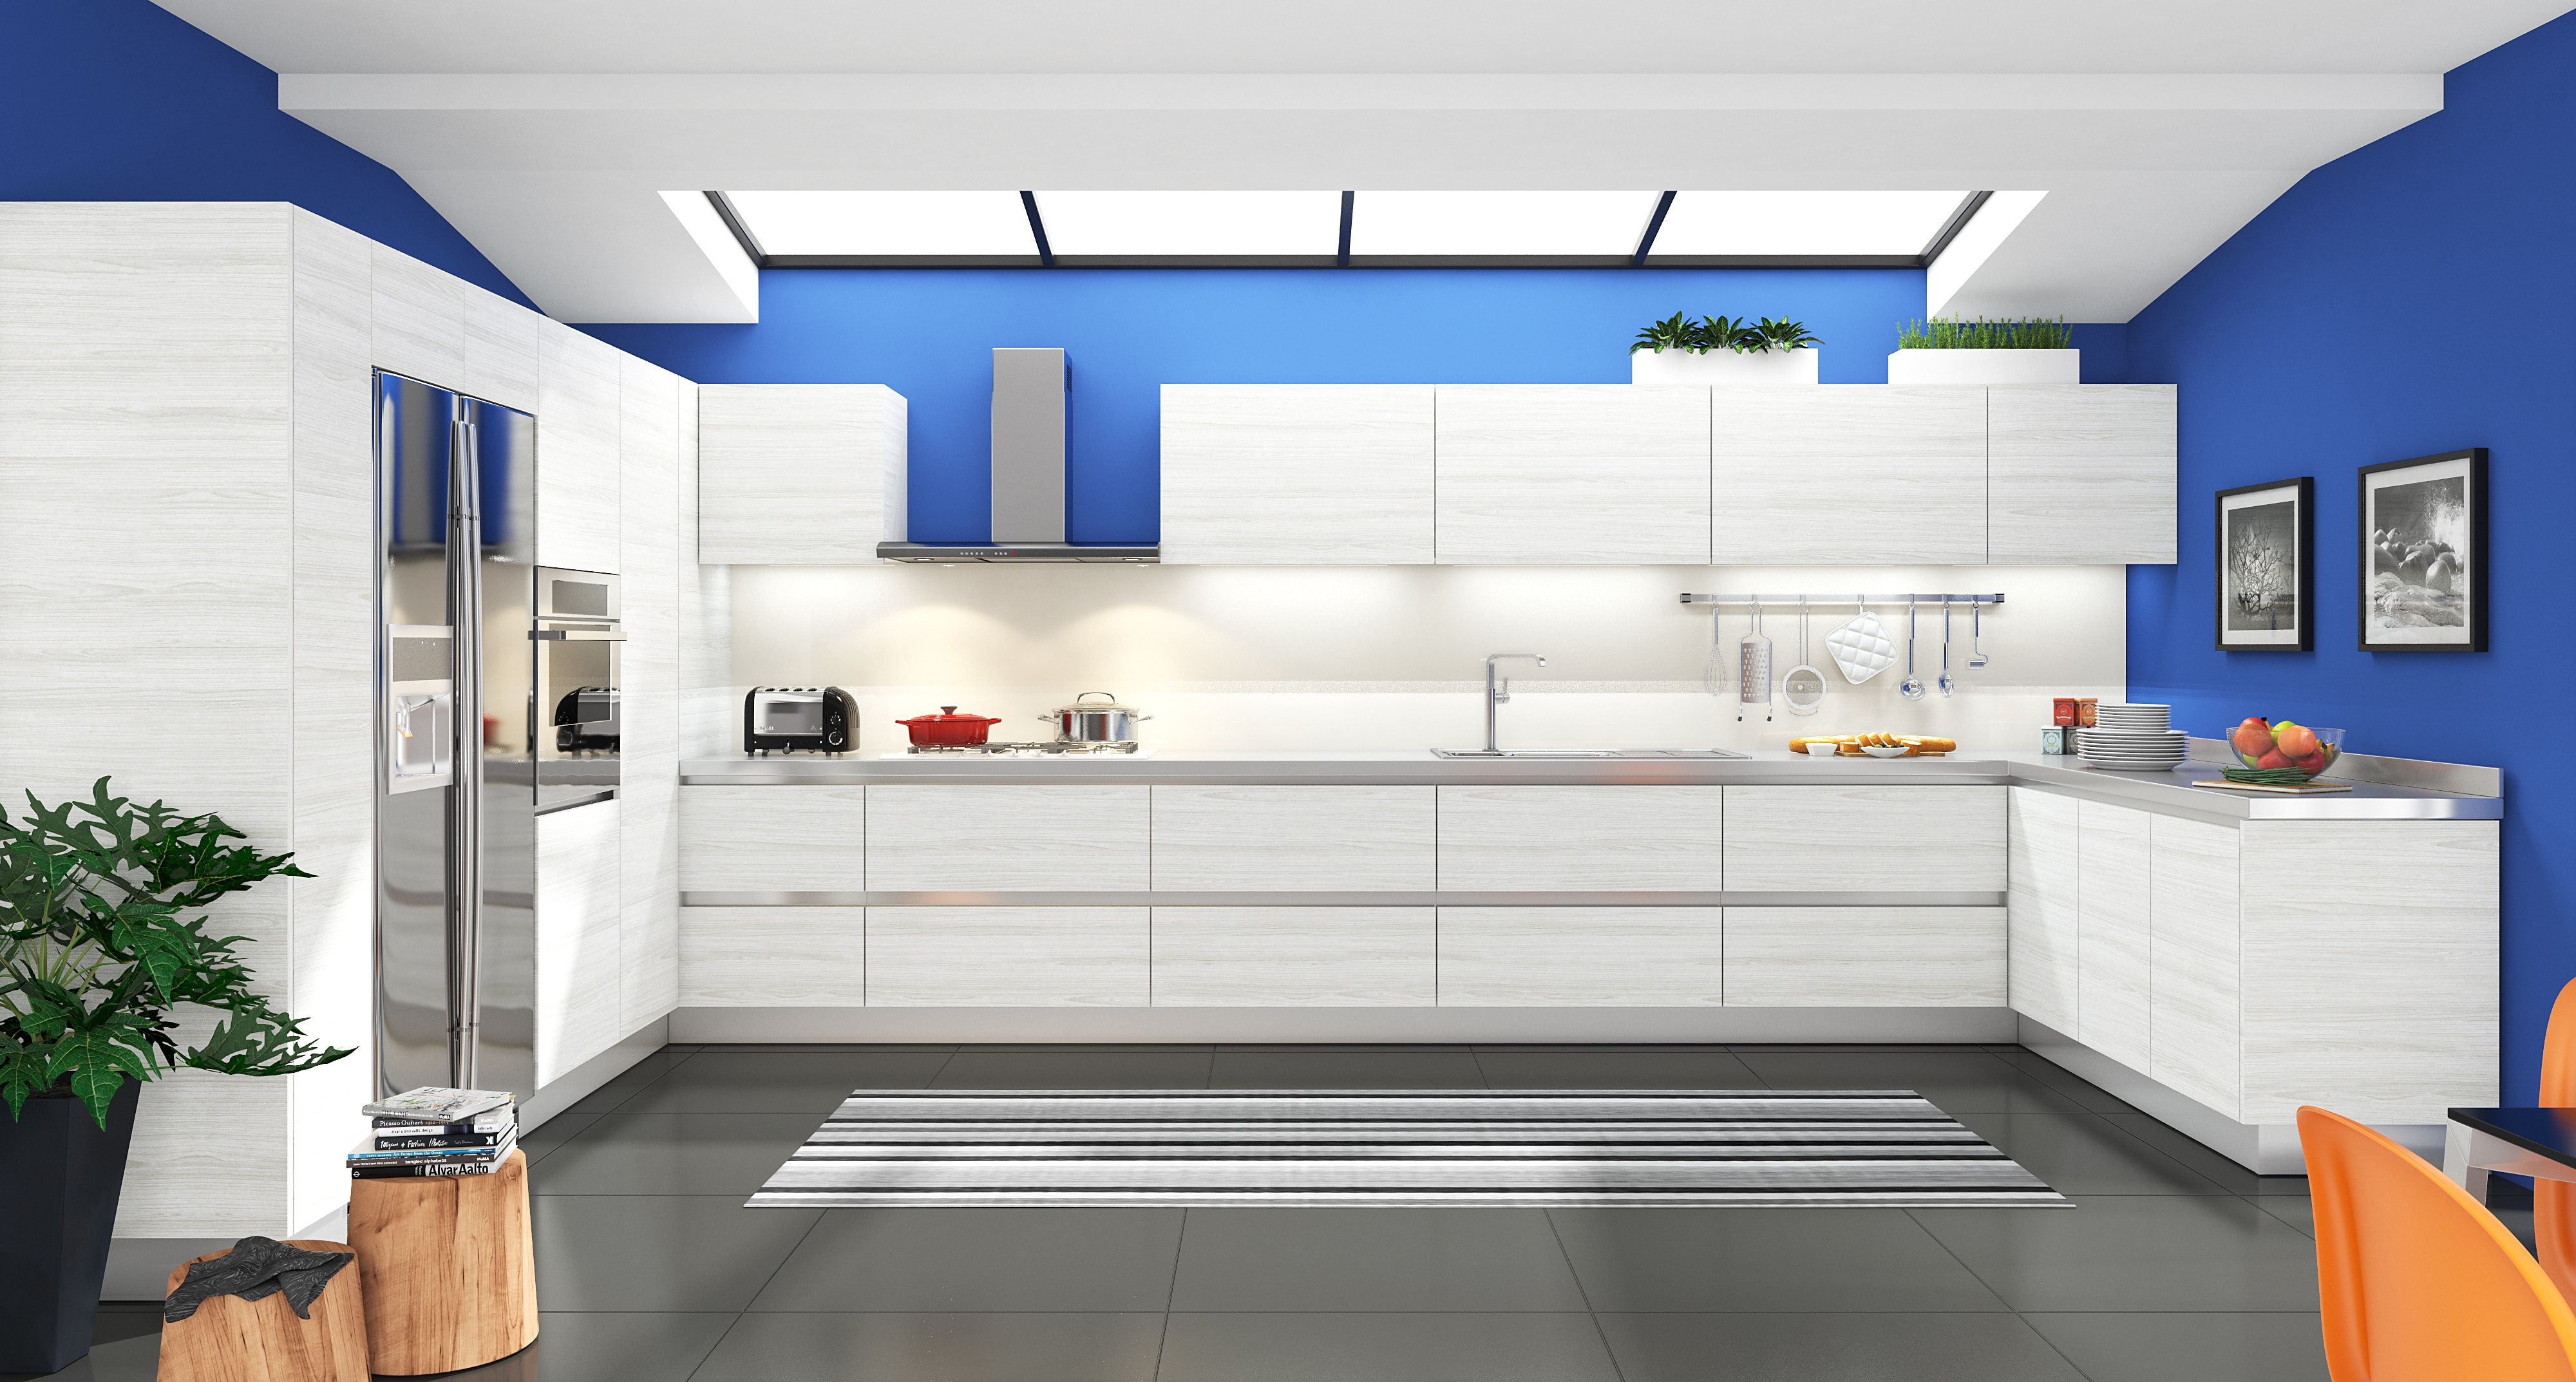 Creating the ideal kitchen and bathroom on a budget.